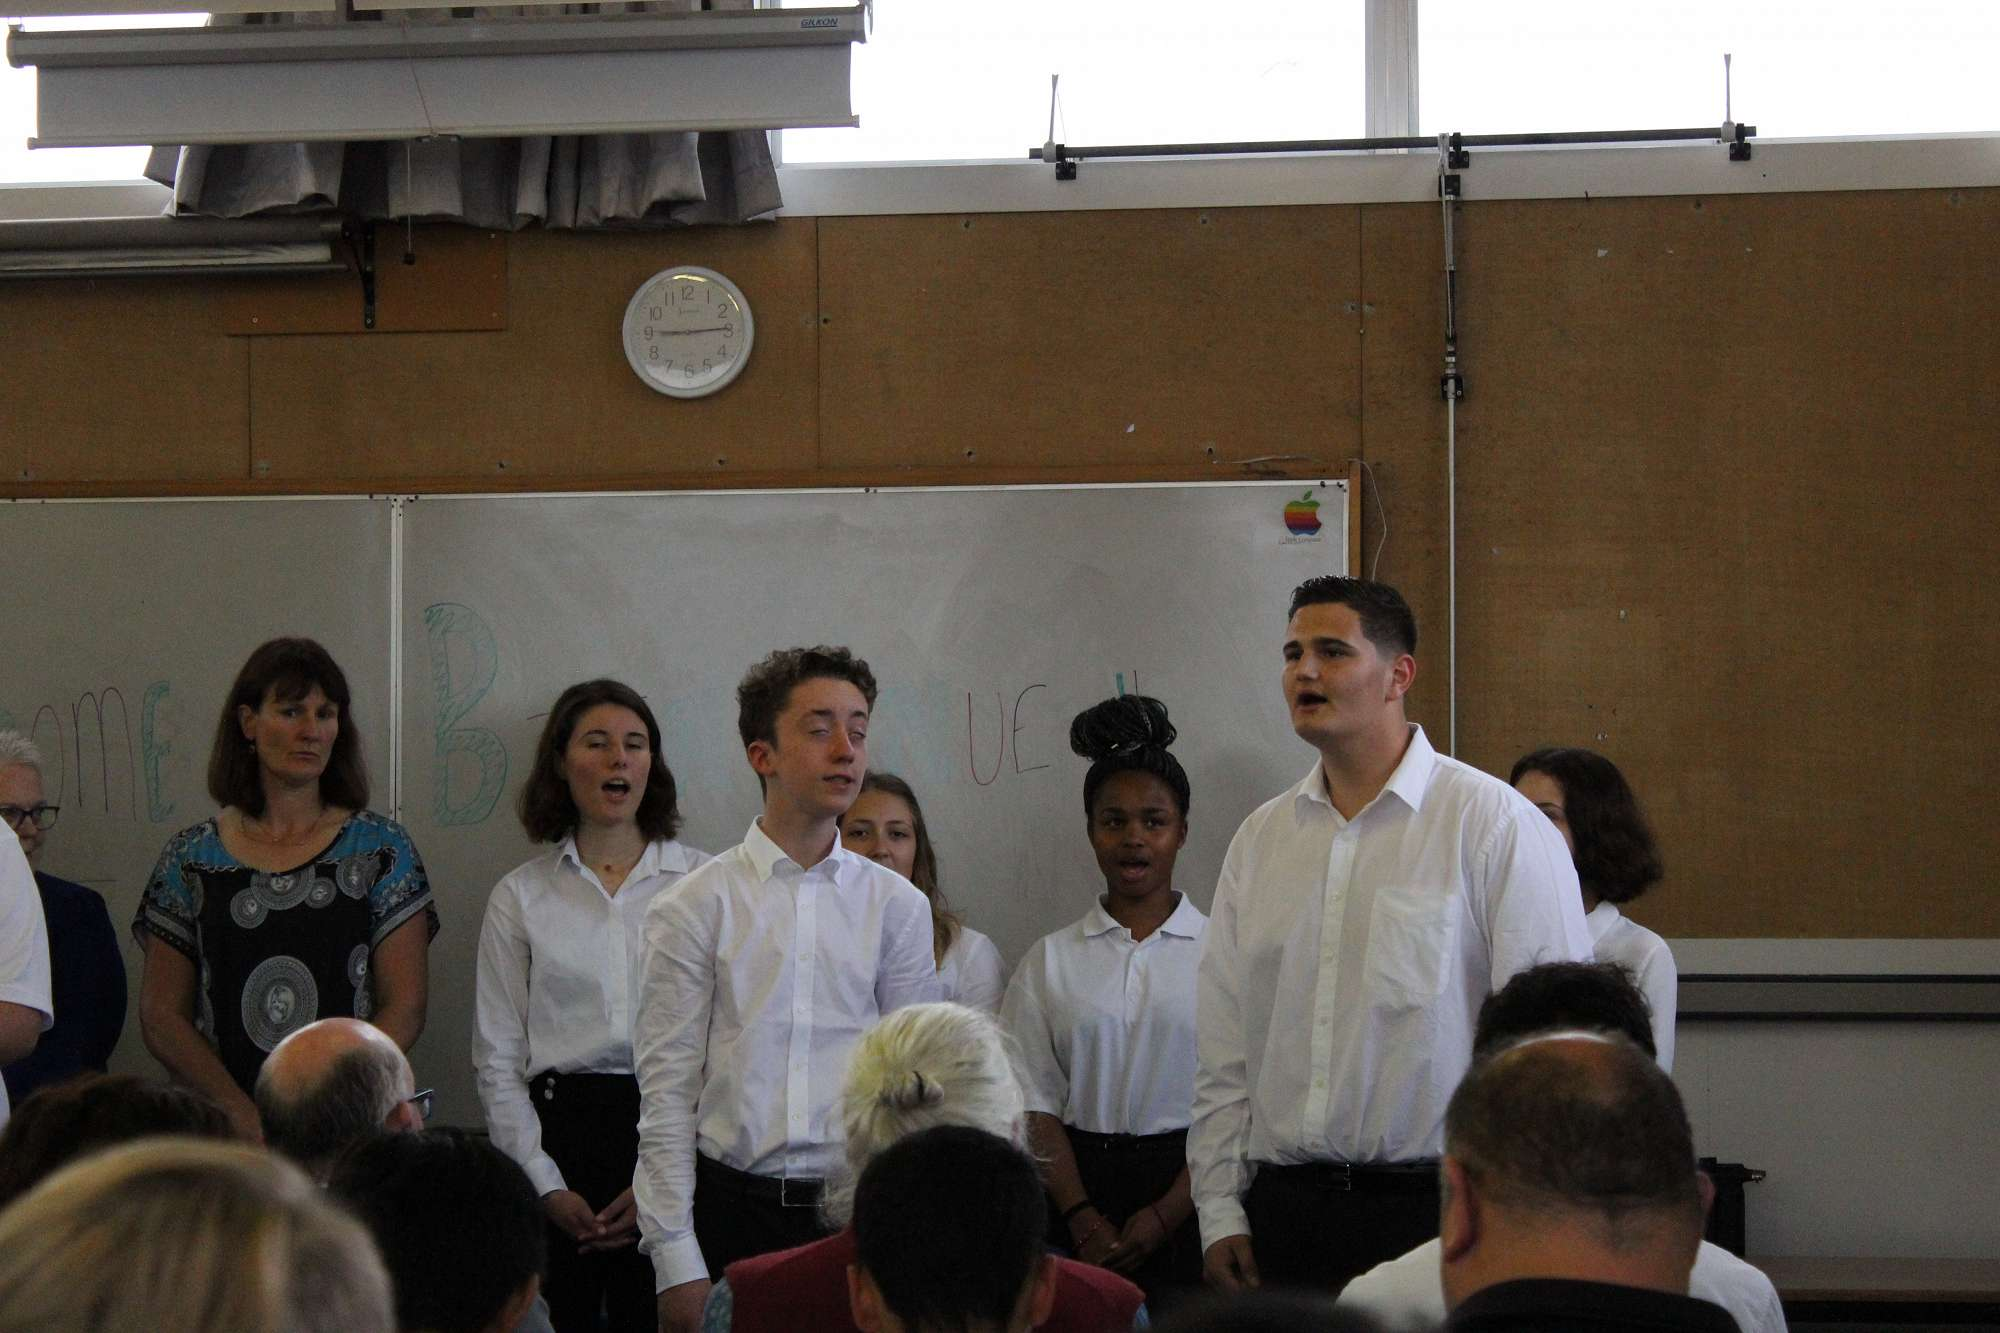 The French students perform waiata during the powhiri